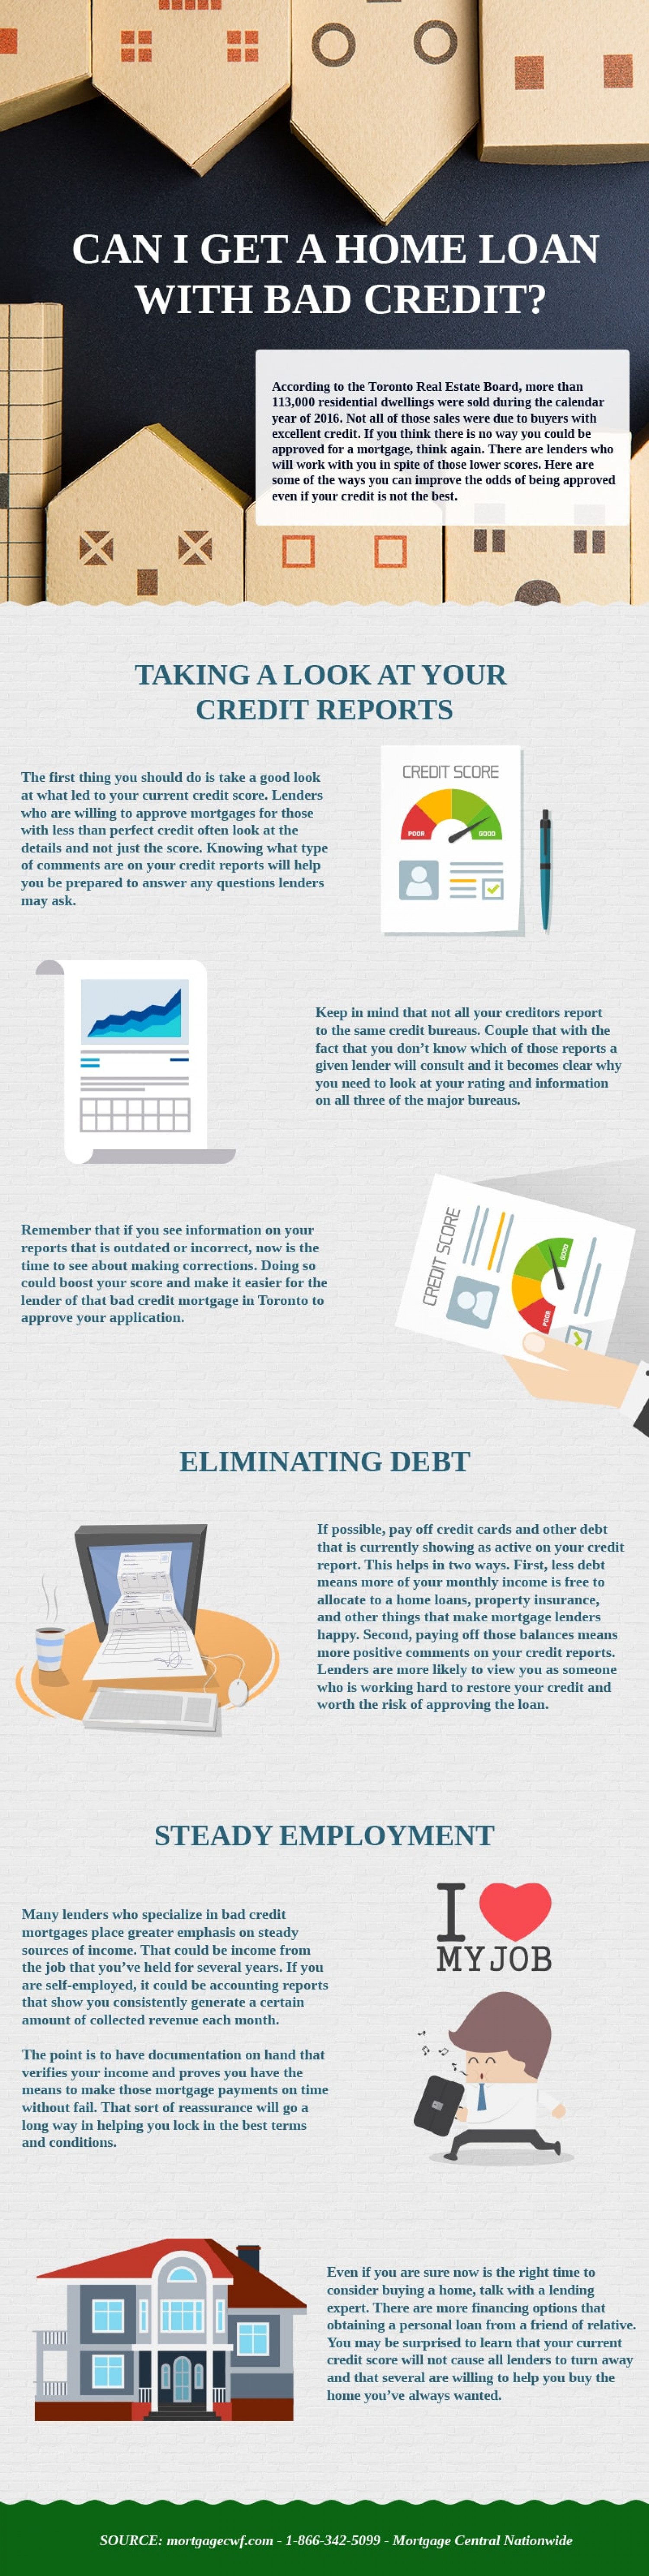 Can I Get a Home Loan With Bad Credit? Infographic